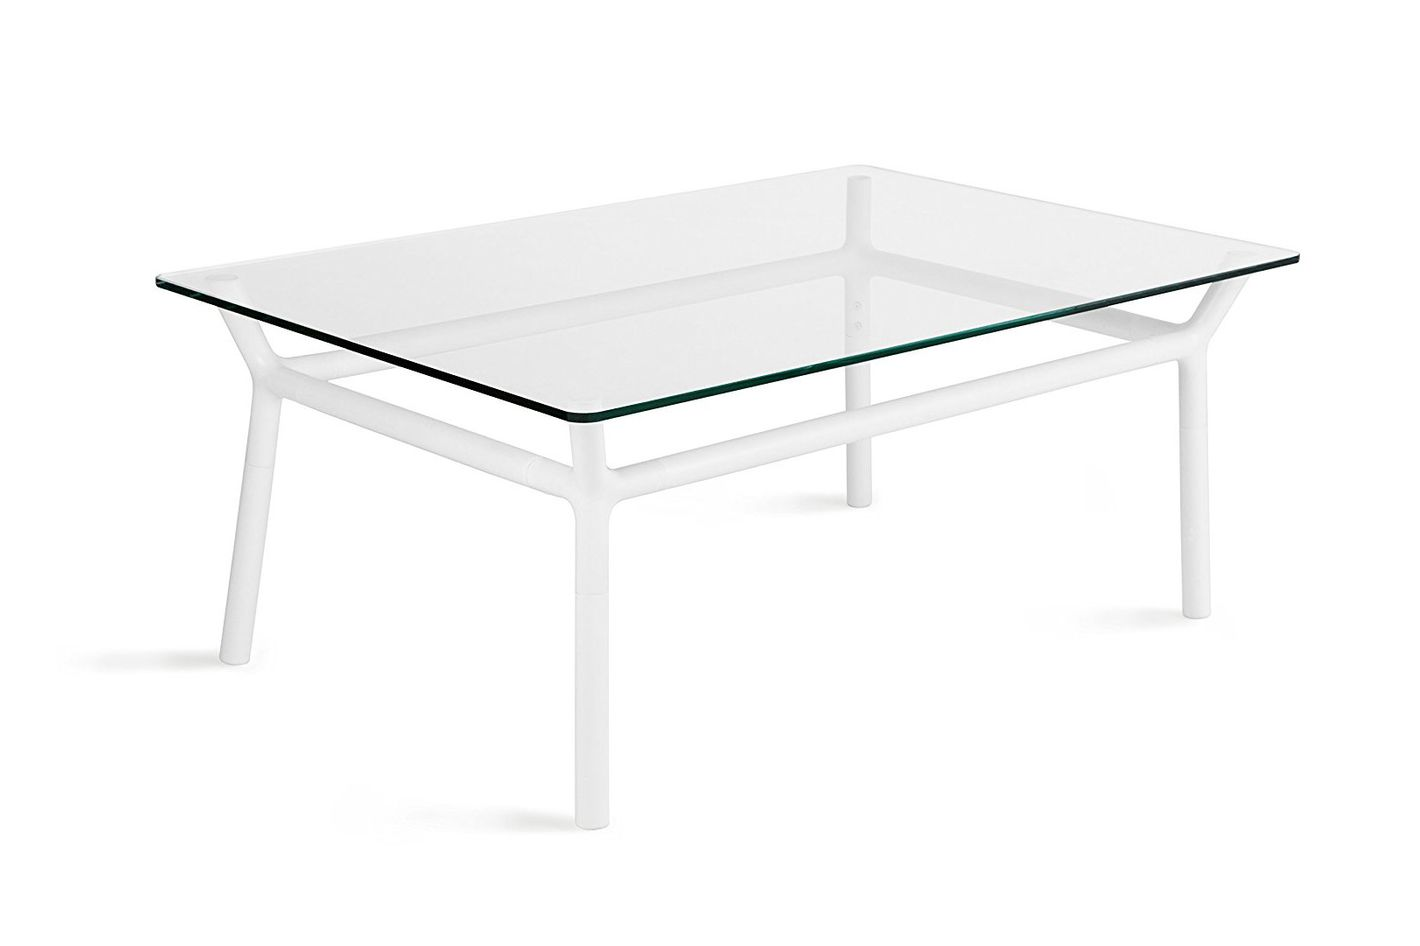 Use This Sleek And Surprisingly Affordable Coffee Table Its Umbra To Complement Even The Most Colorful Room